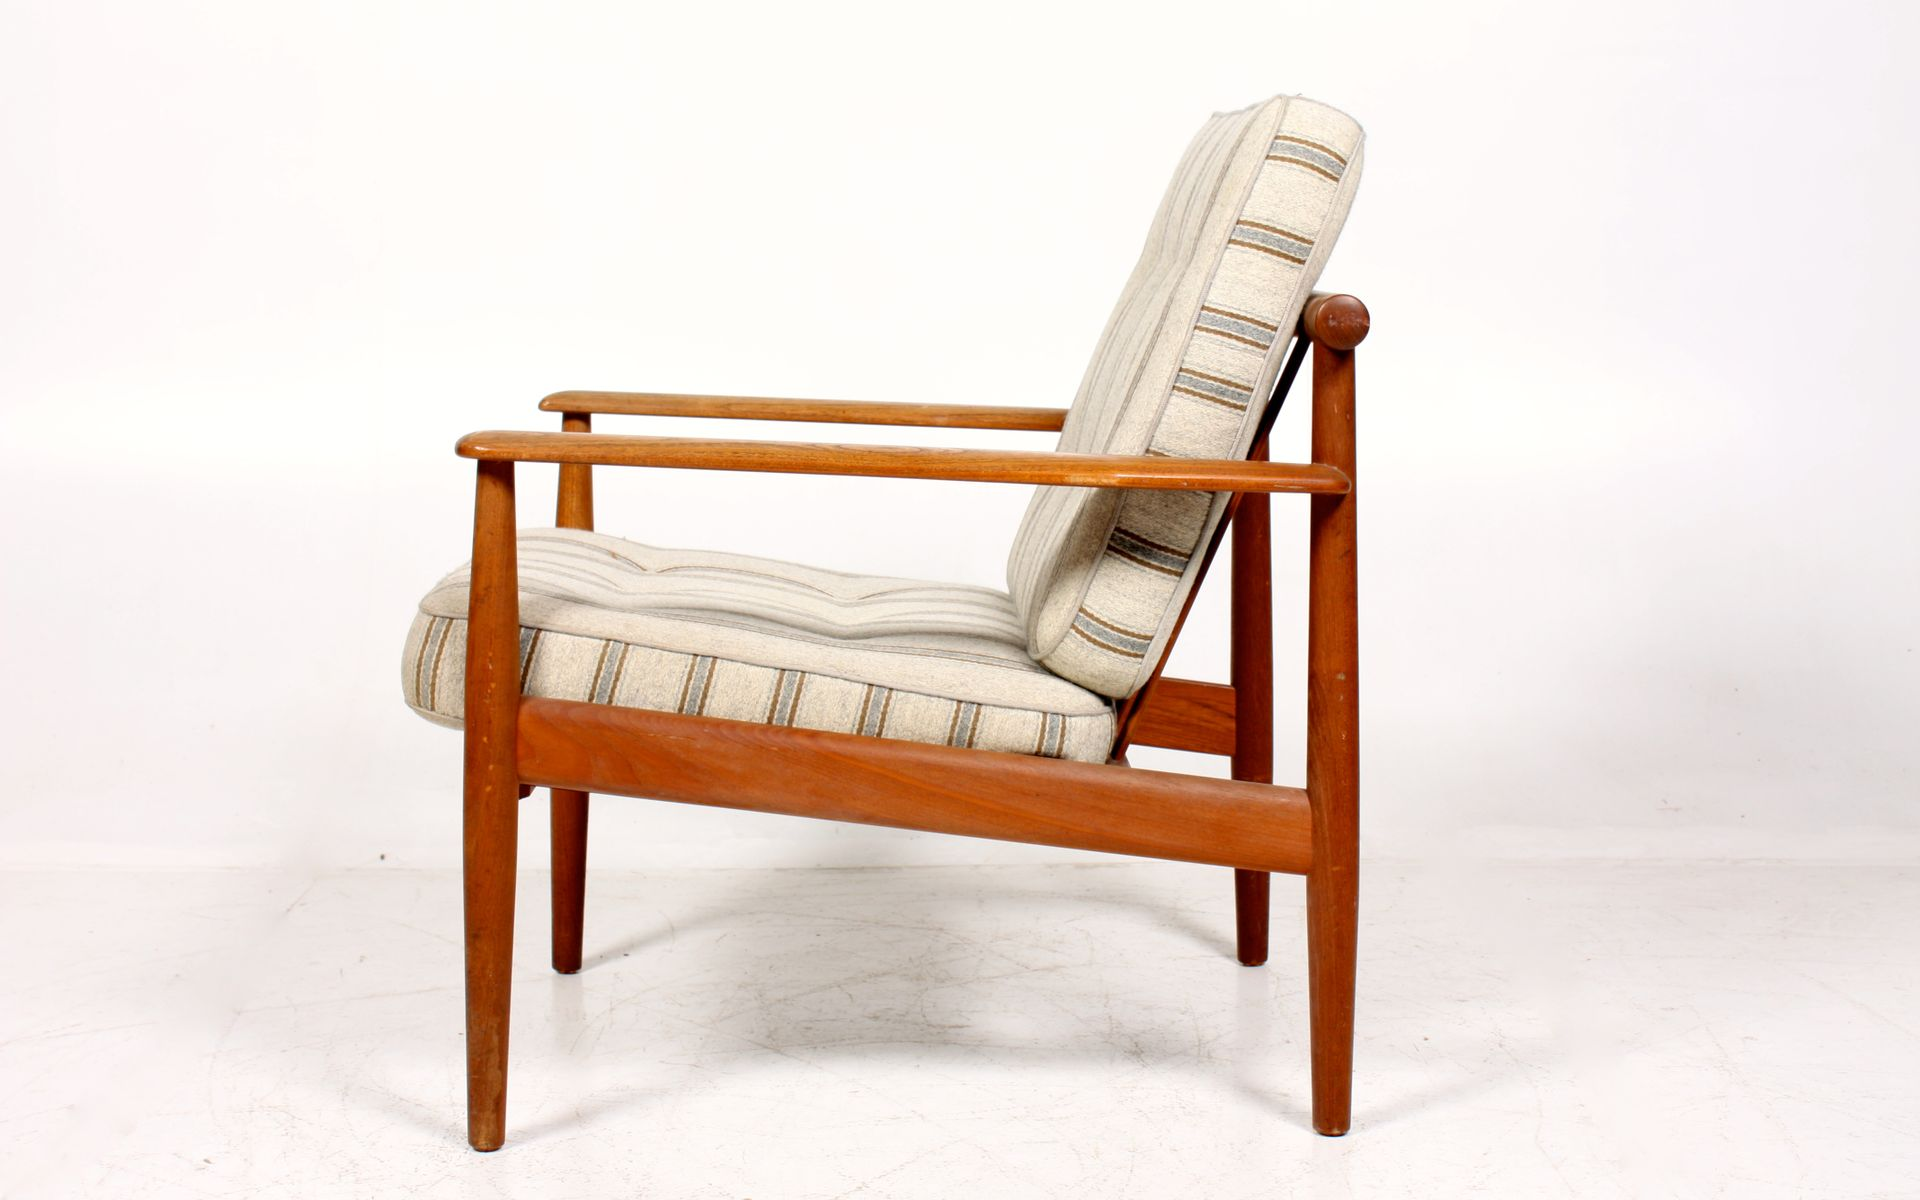 Vintage Teak Lounge Chair by France & Søn for sale at Pamono